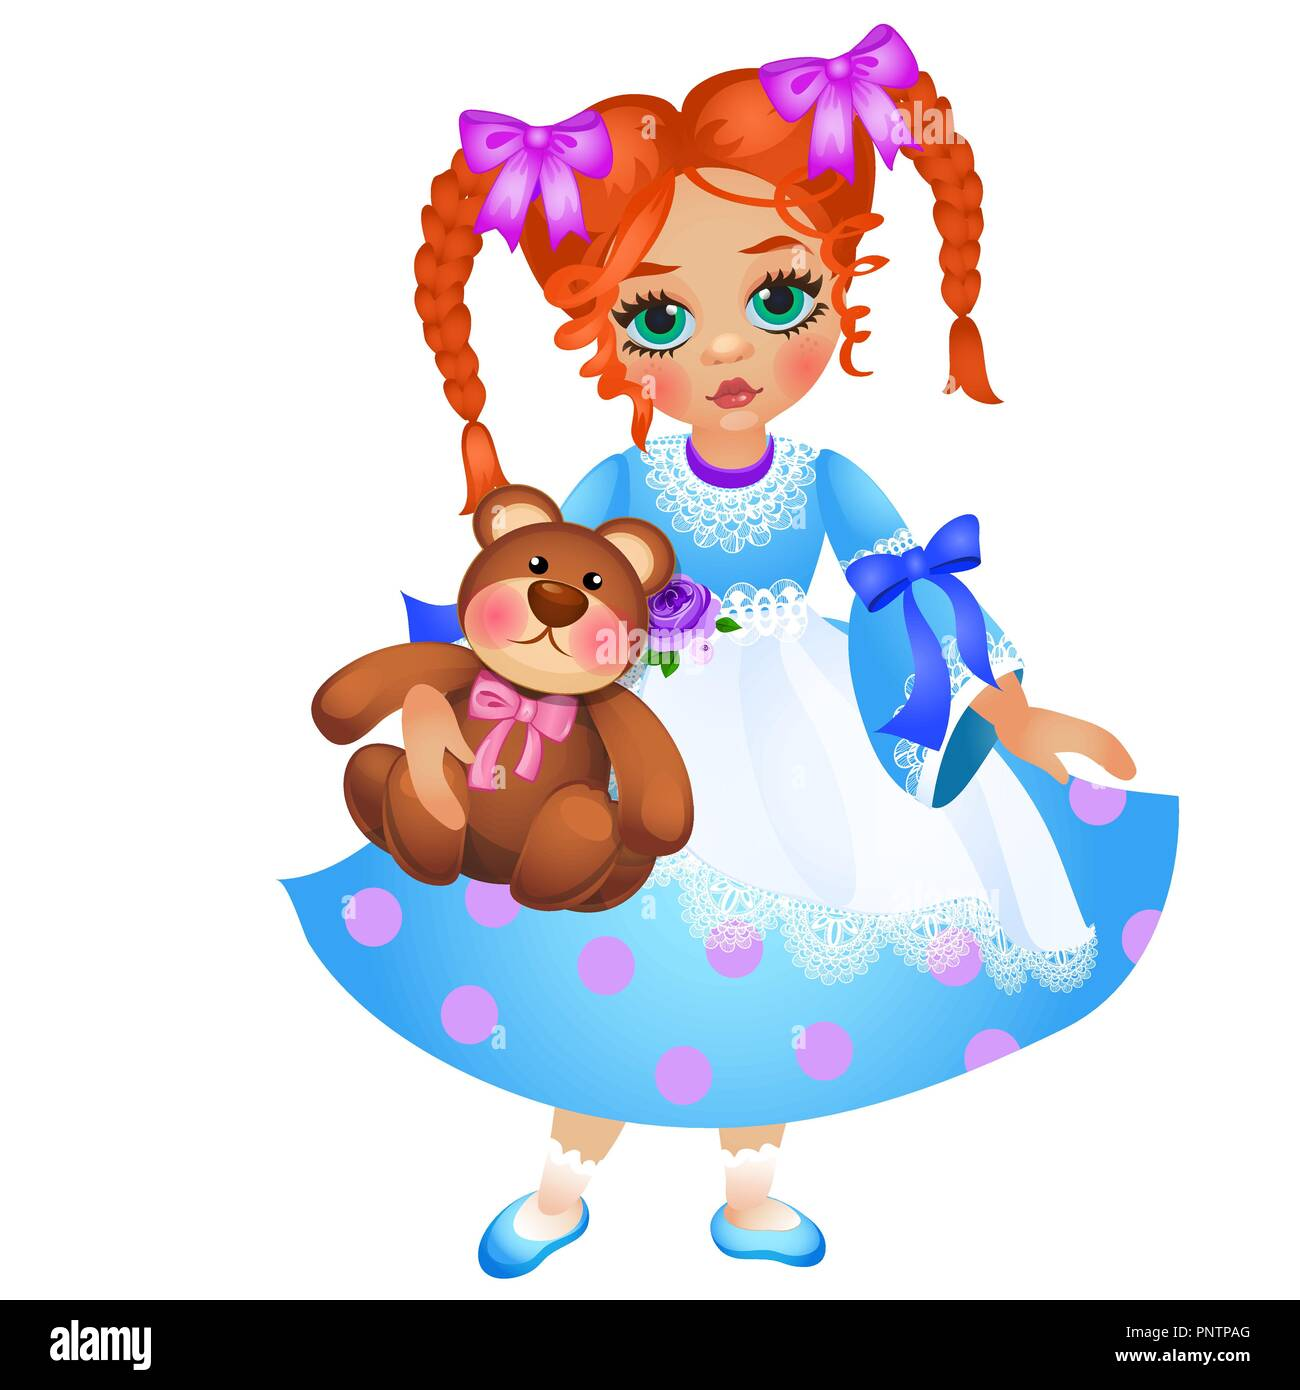 Little redhead girl with two braided pigtails holds toy teddy bear isolated on white background. Vector cartoon close-up illustration. - Stock Vector